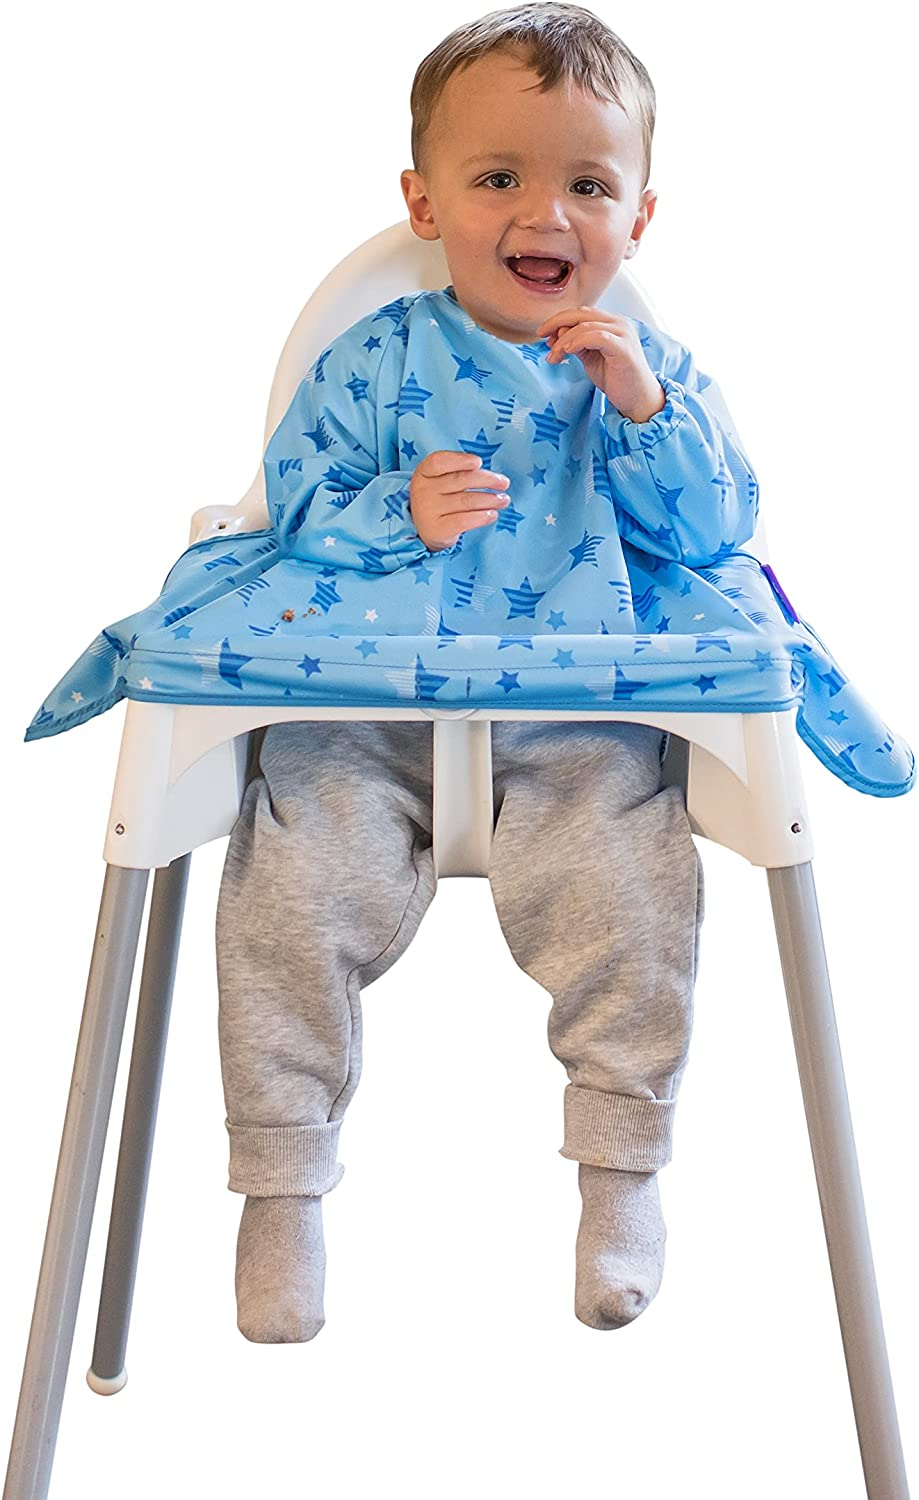 Tidy Tot Cover Catch Waterproof Bib attaches highchair Baltimore low-pricing Mall NO to M